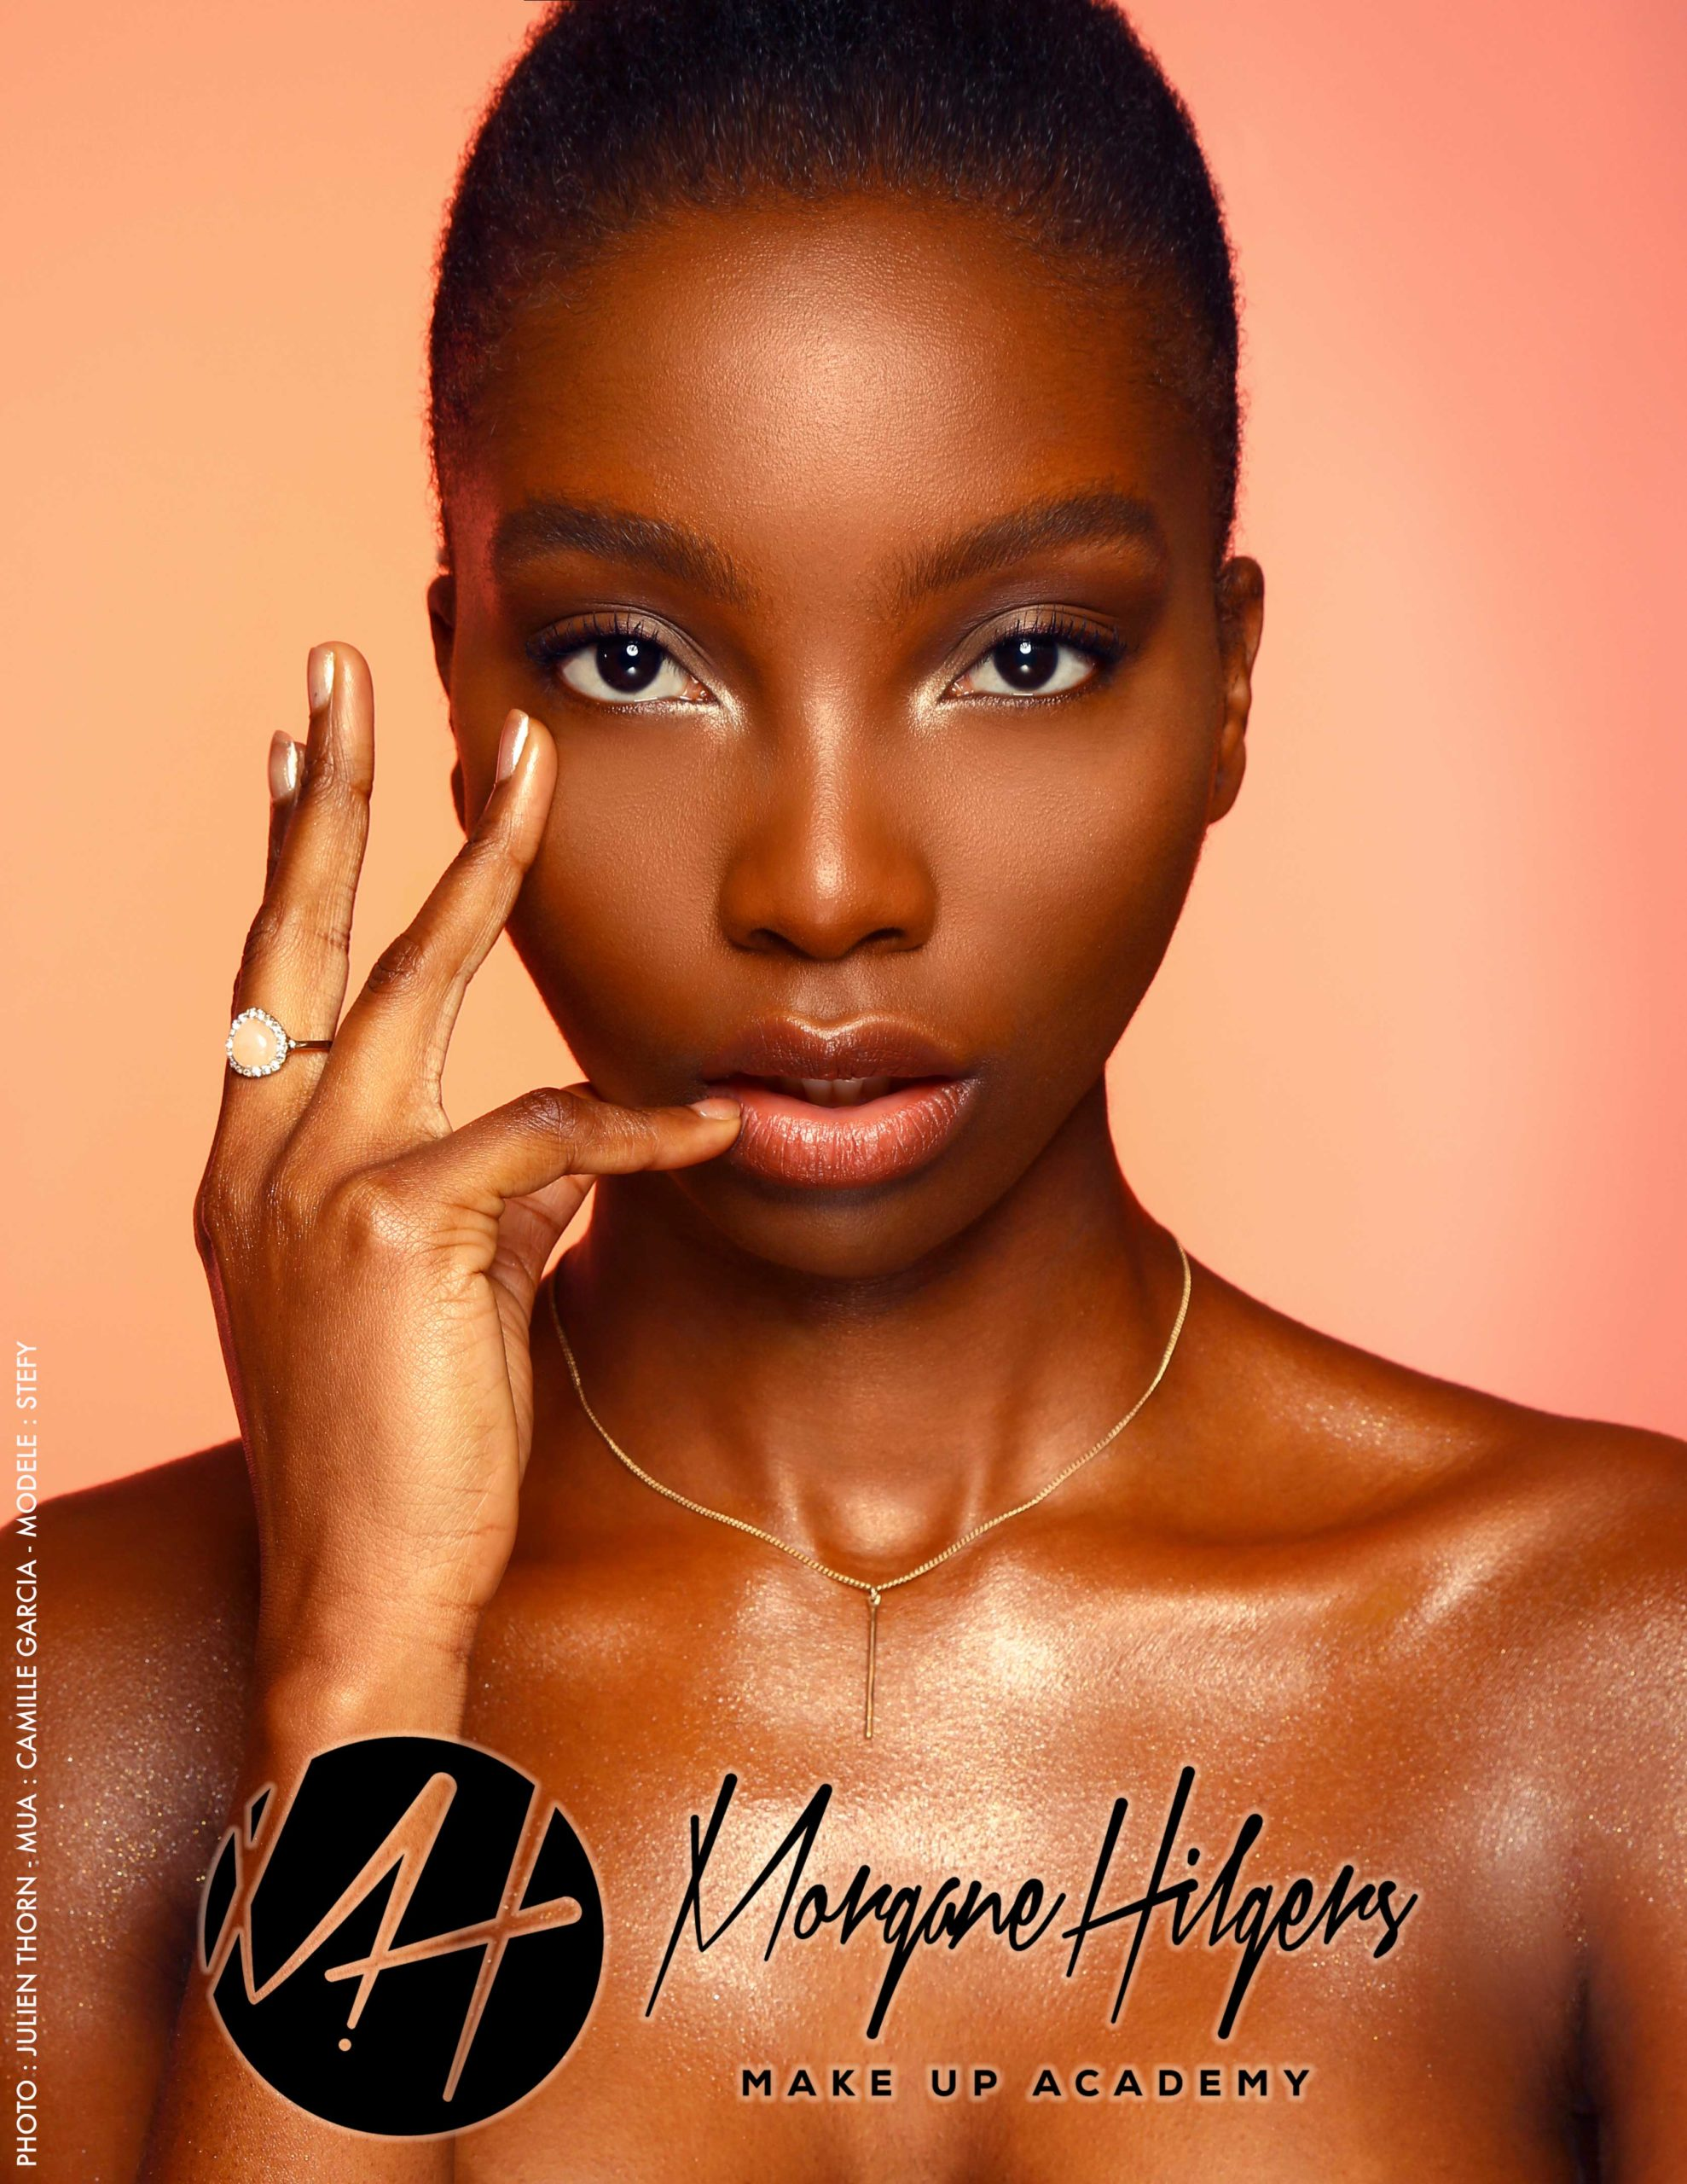 Make up on black skin, shades that match by Morgane Hilgers